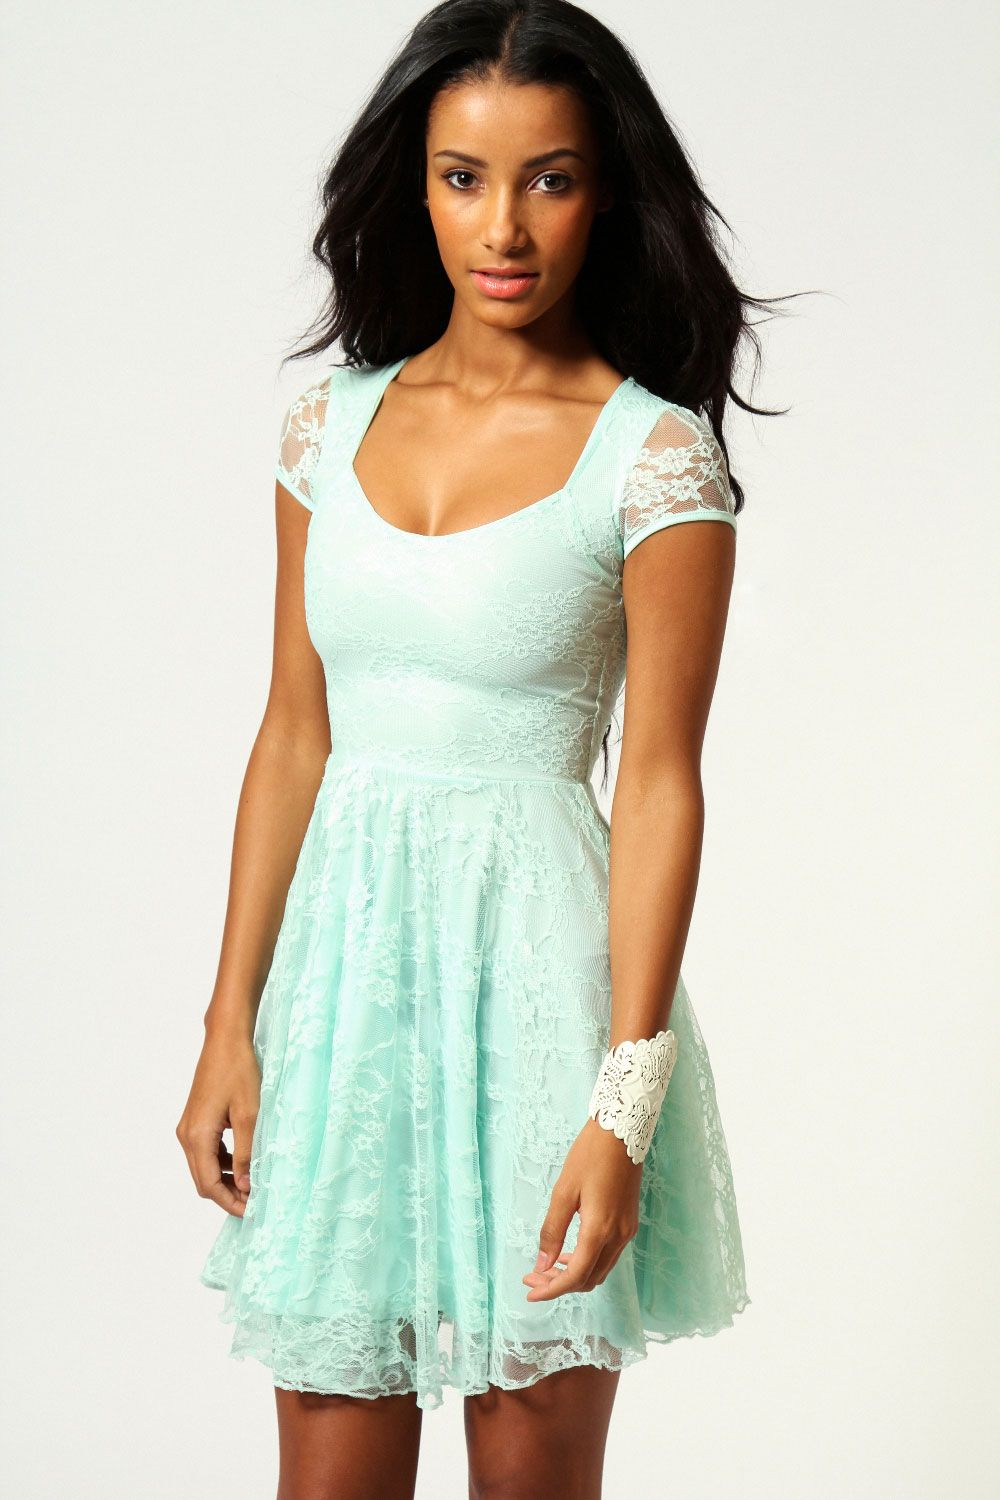 Pin by grace andrews on my style pinterest mint lace dresses